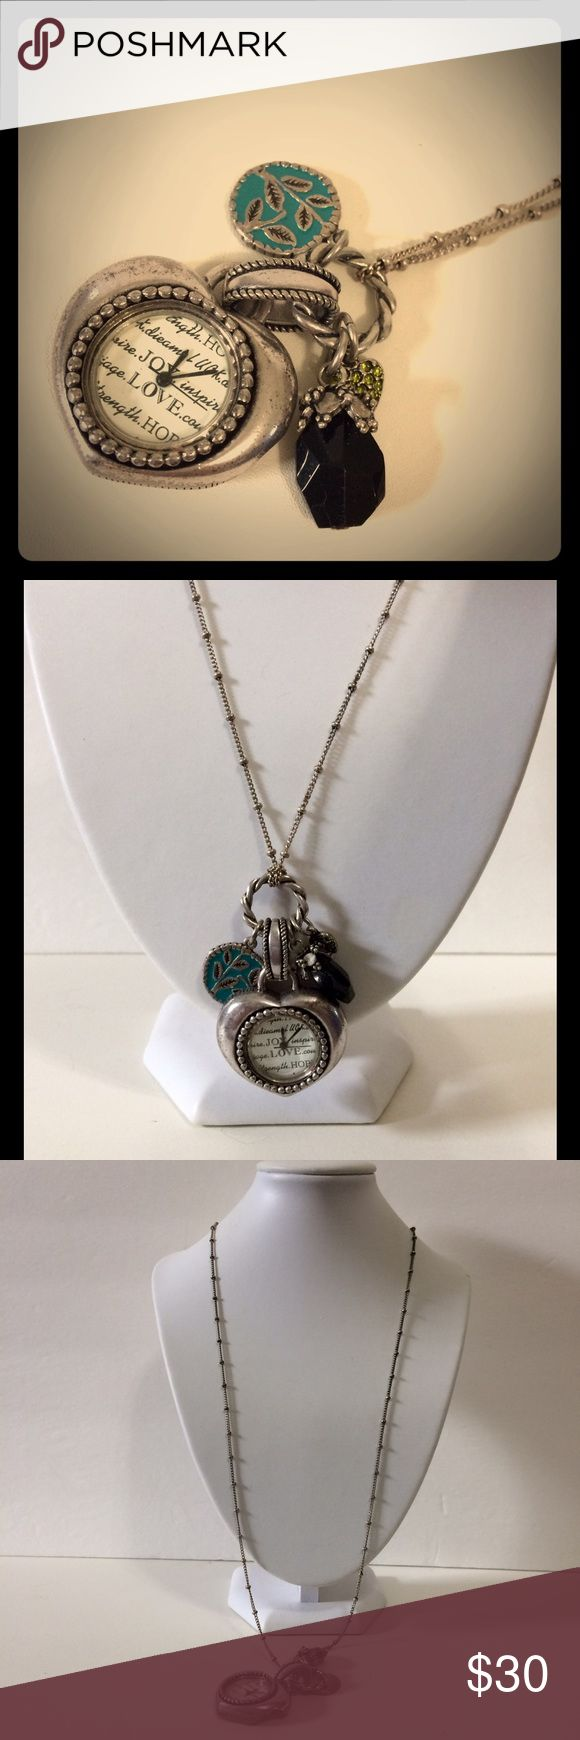 Chico's Charms 'n Watch Necklace Beautiful, long keep-time necklace from Chico's.  Vintage style.  Needs battery. Chico's Jewelry Necklaces